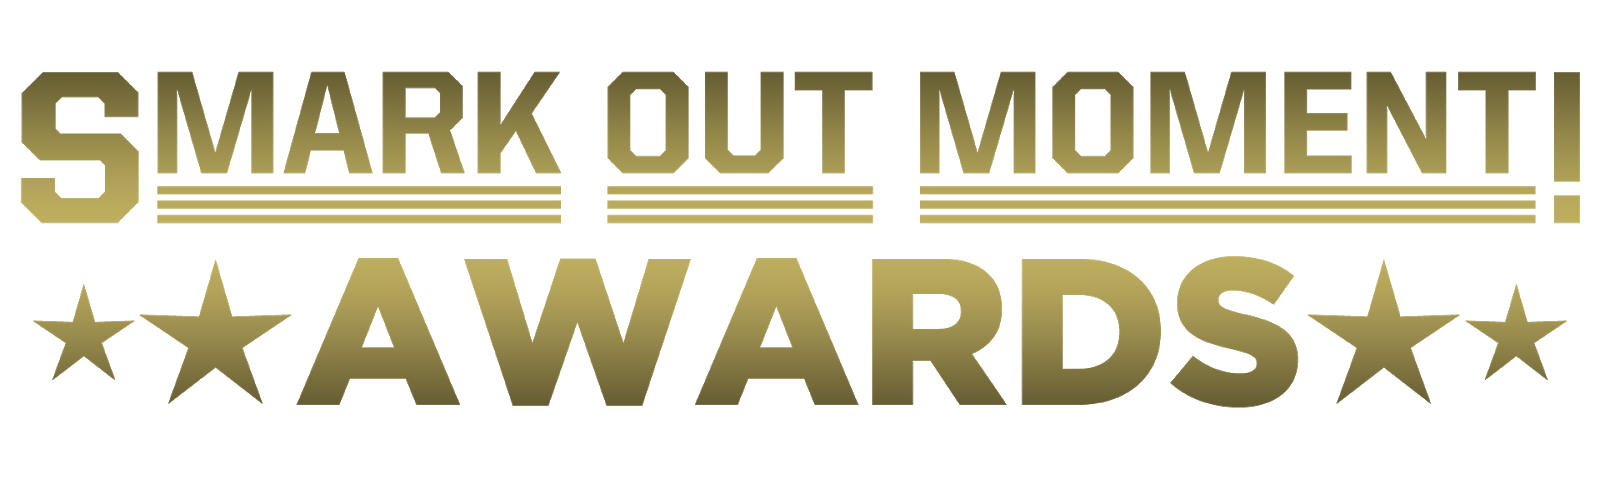 2020 Smark Out Moment Awards